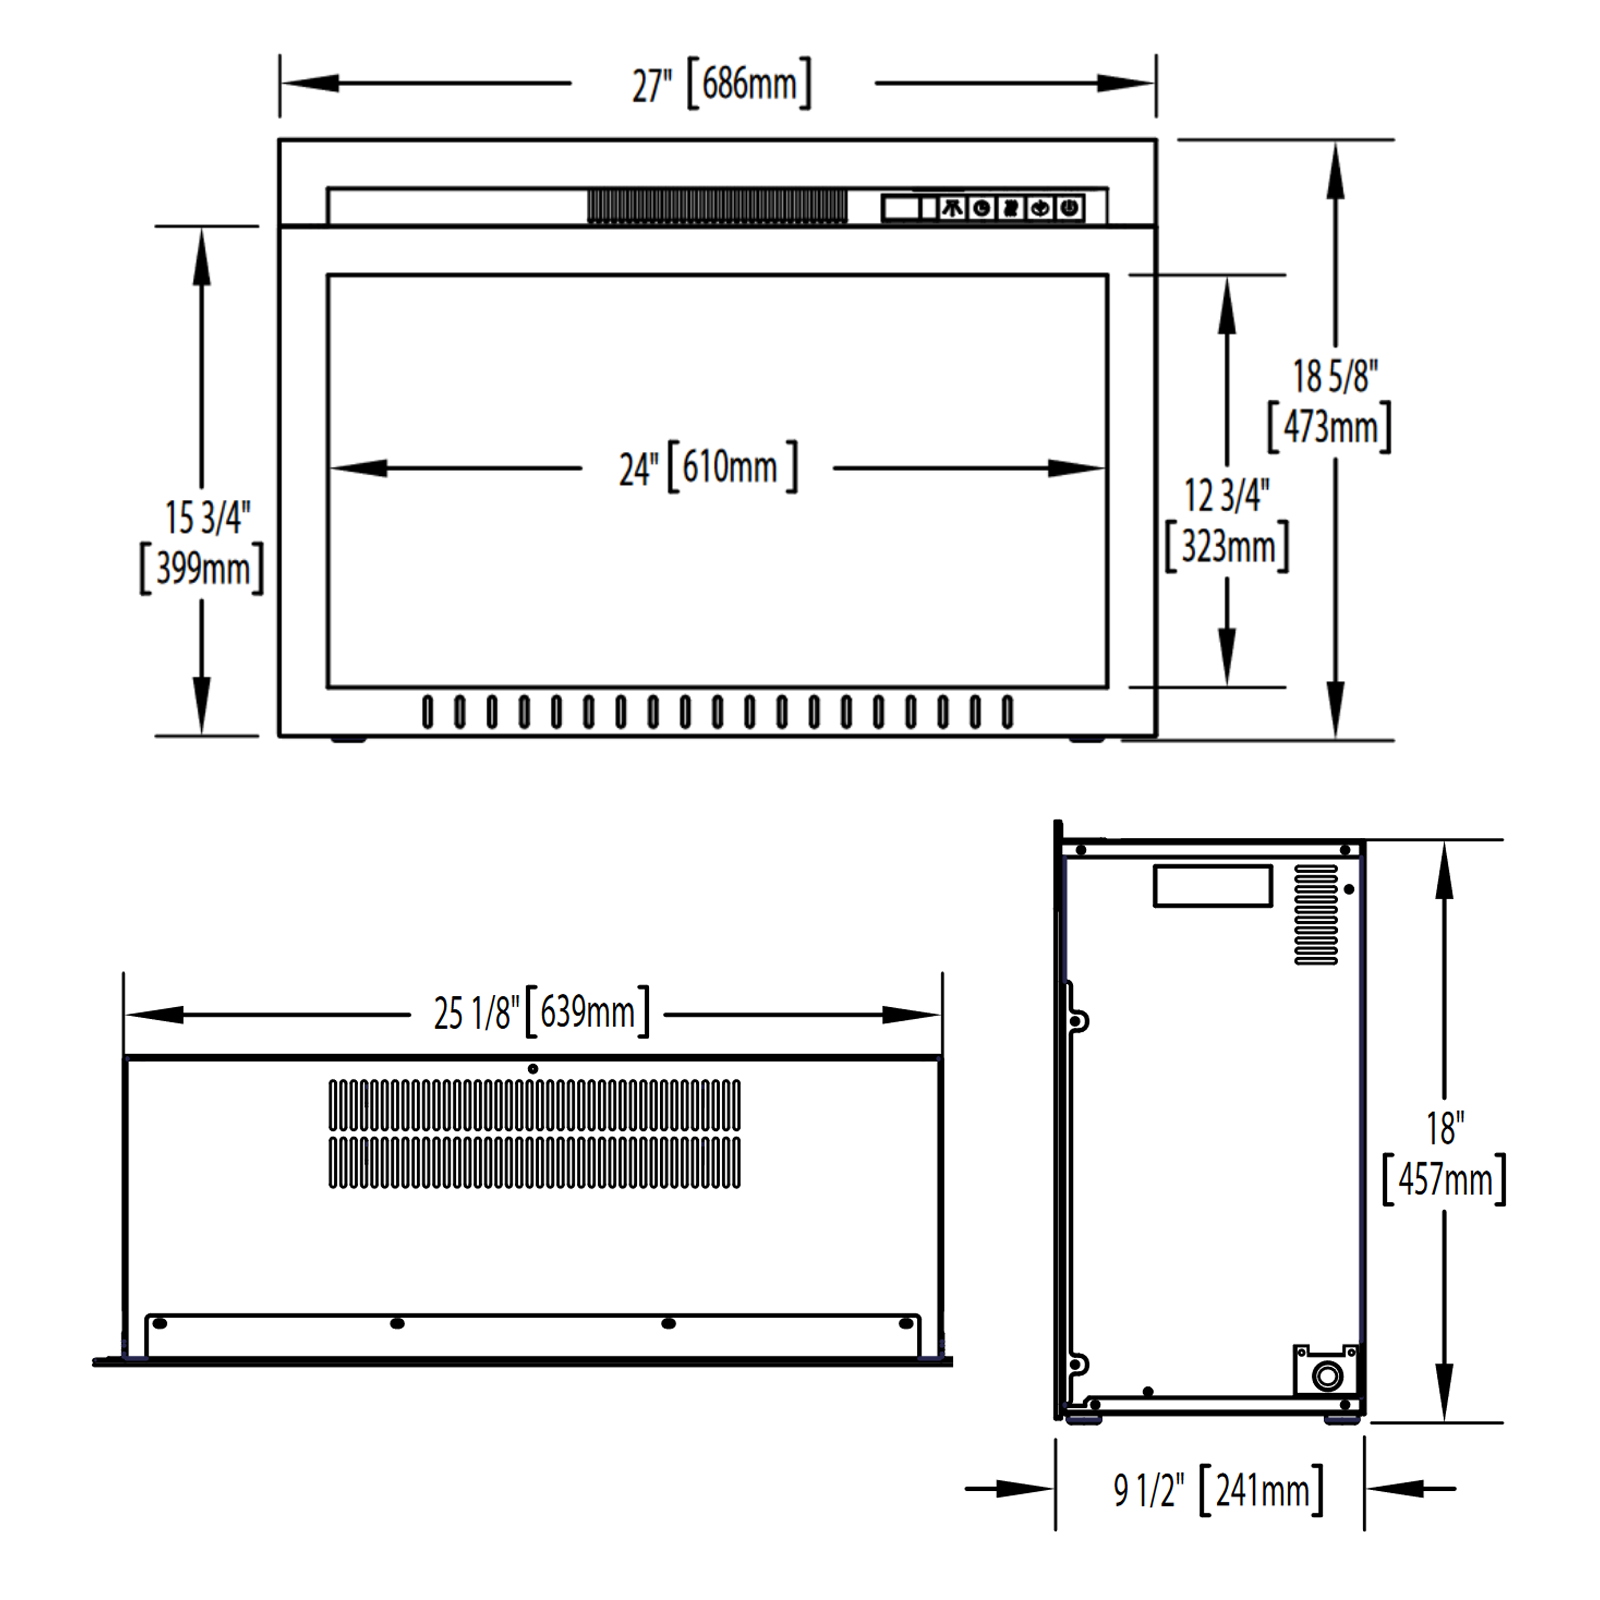 NEFB27 Technical Drawing 1